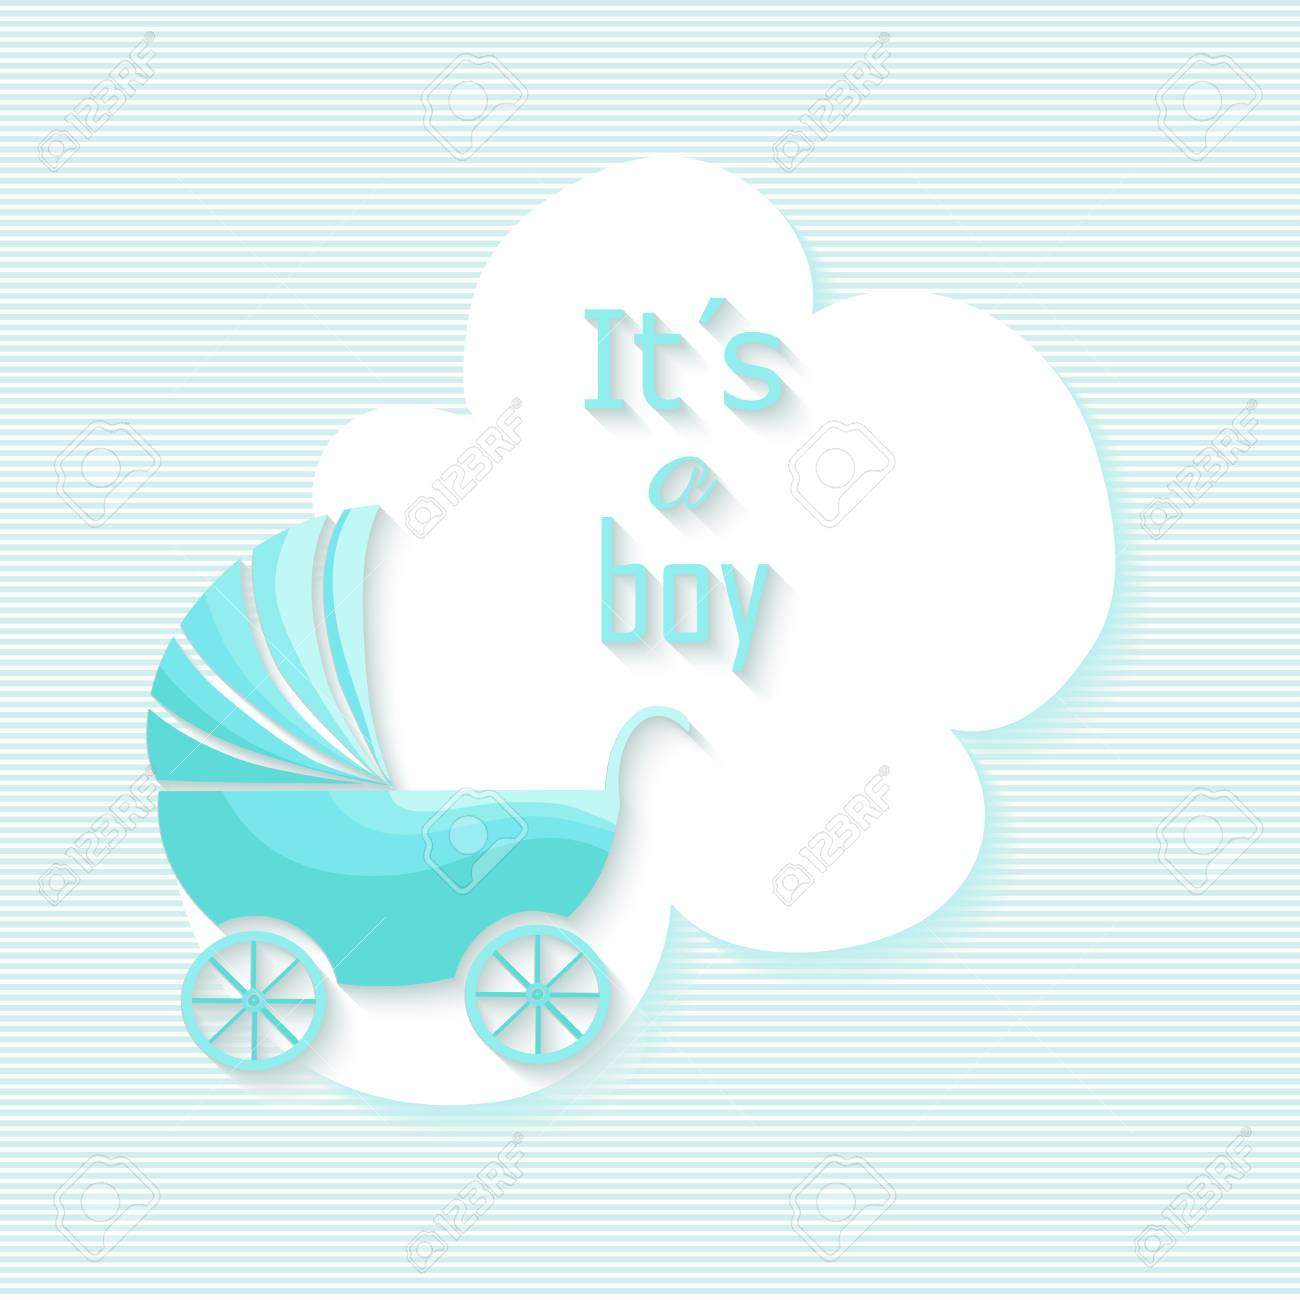 Baby shower boy invitation card with blue stroller design baby shower boy invitation card with blue stroller design illustration eps10 vector file organized in stopboris Images